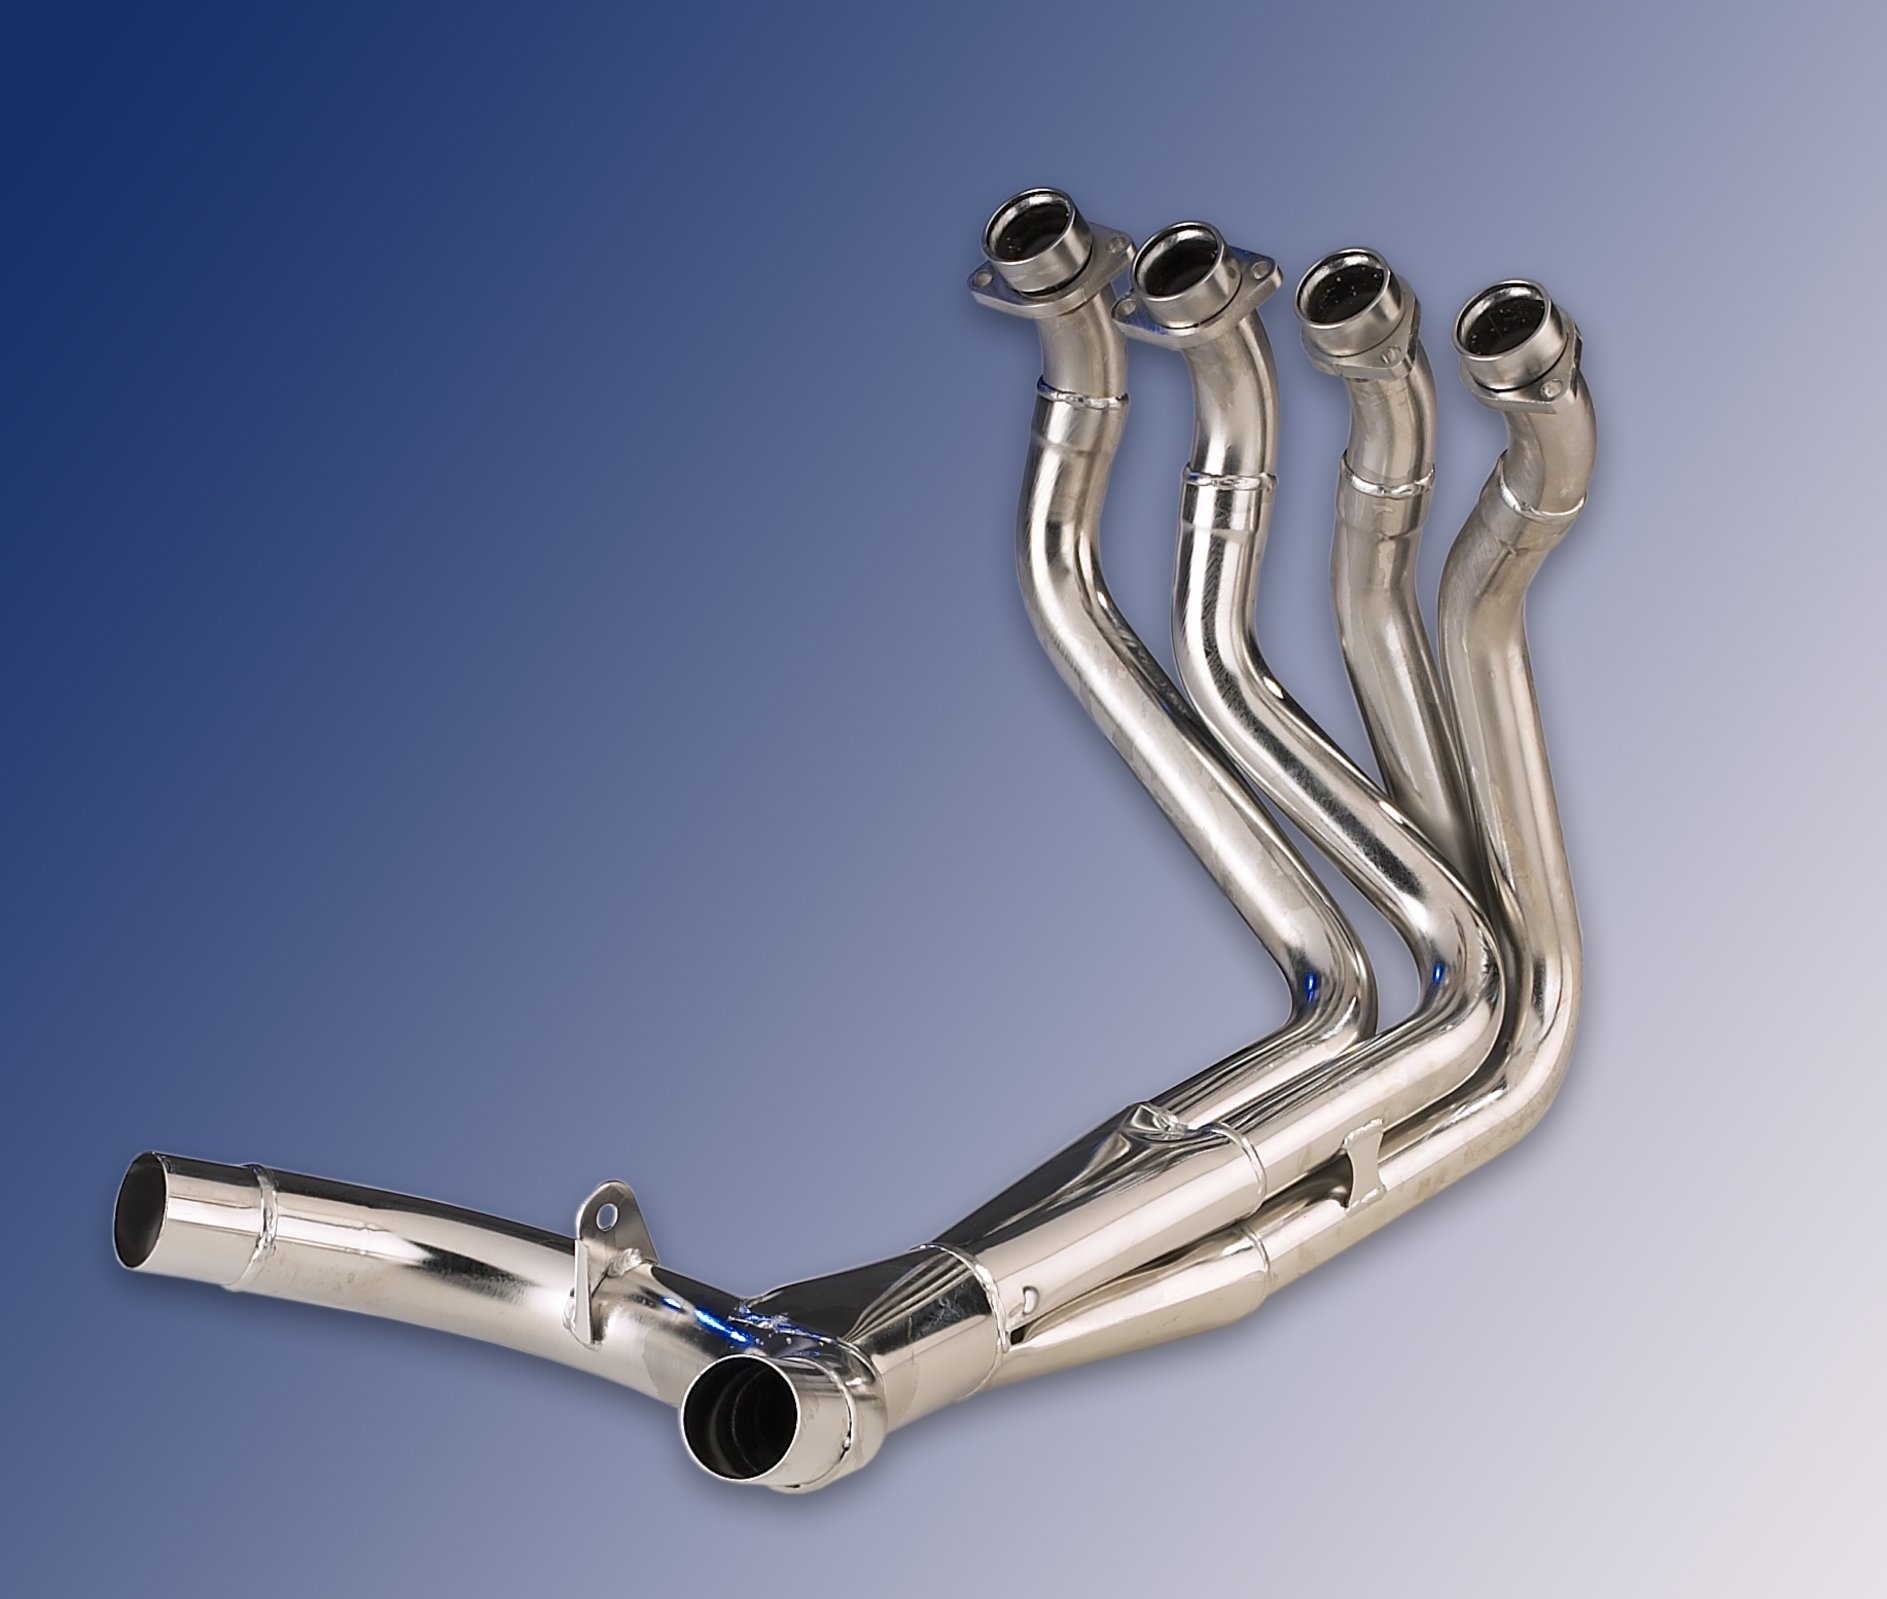 YAMAHA 4 Stroke Downpipes & Collectors only